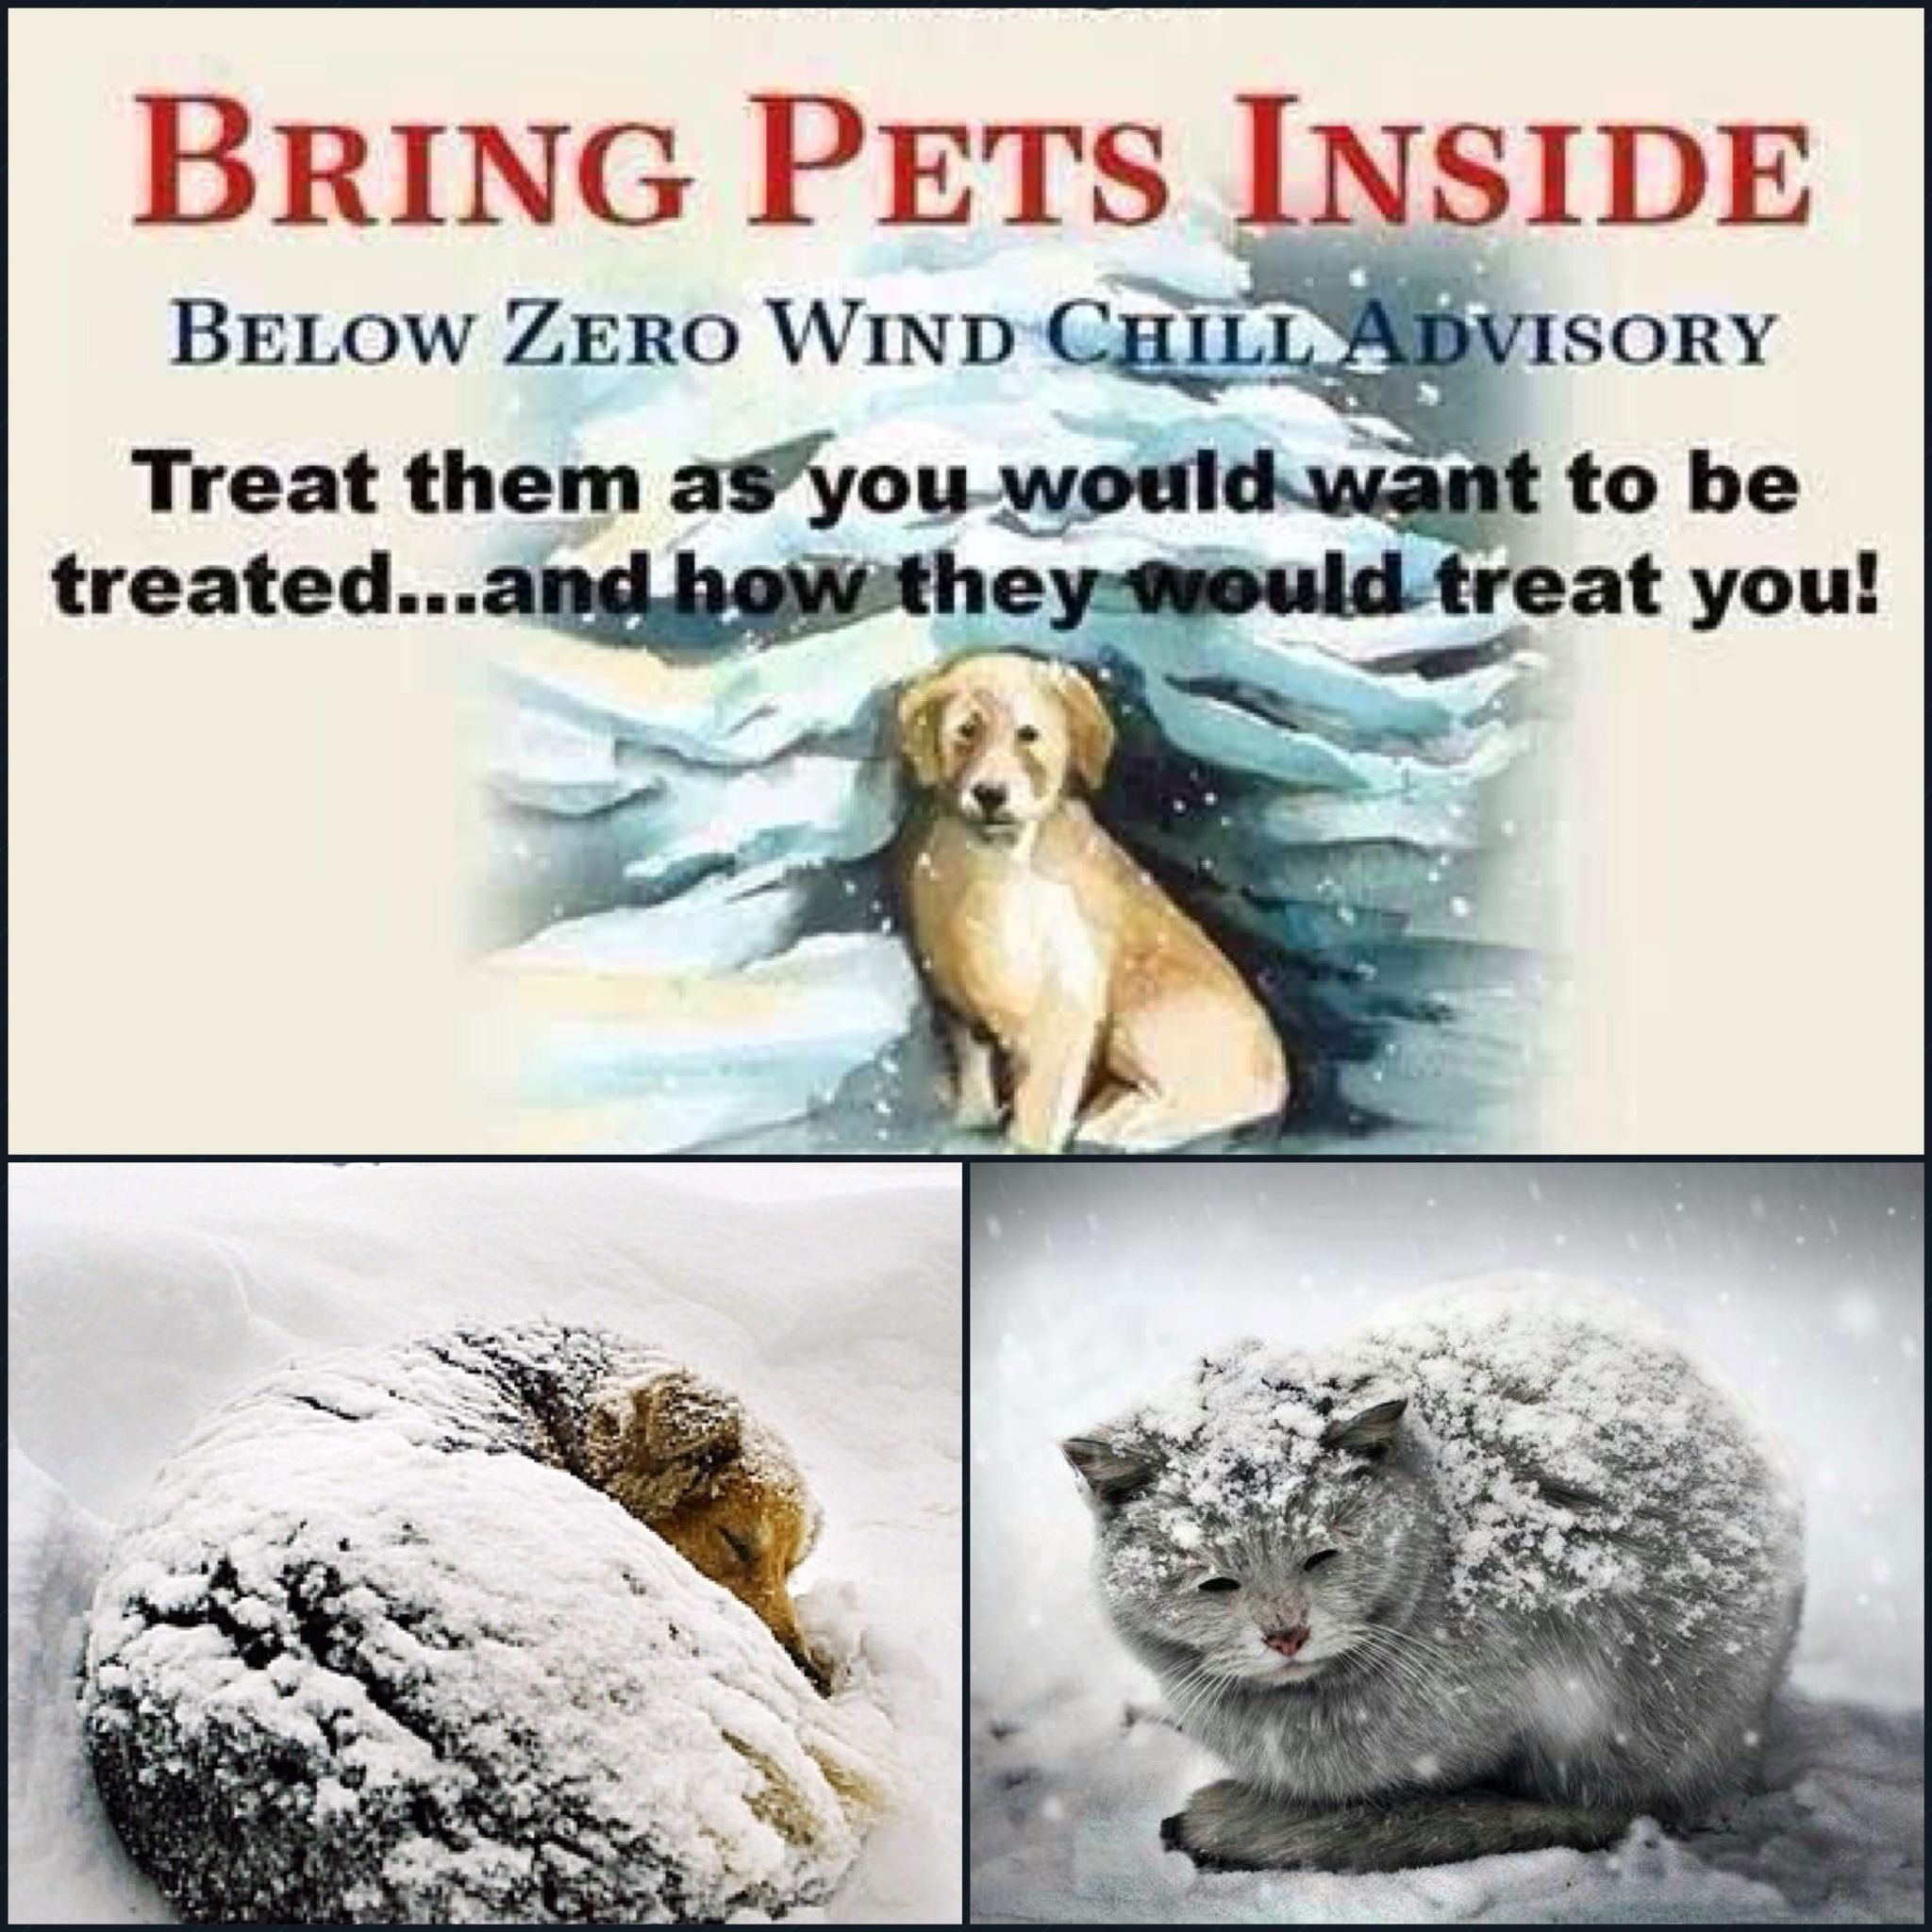 Bring Pets Inside Pets Bring It On Human Rights Abuse